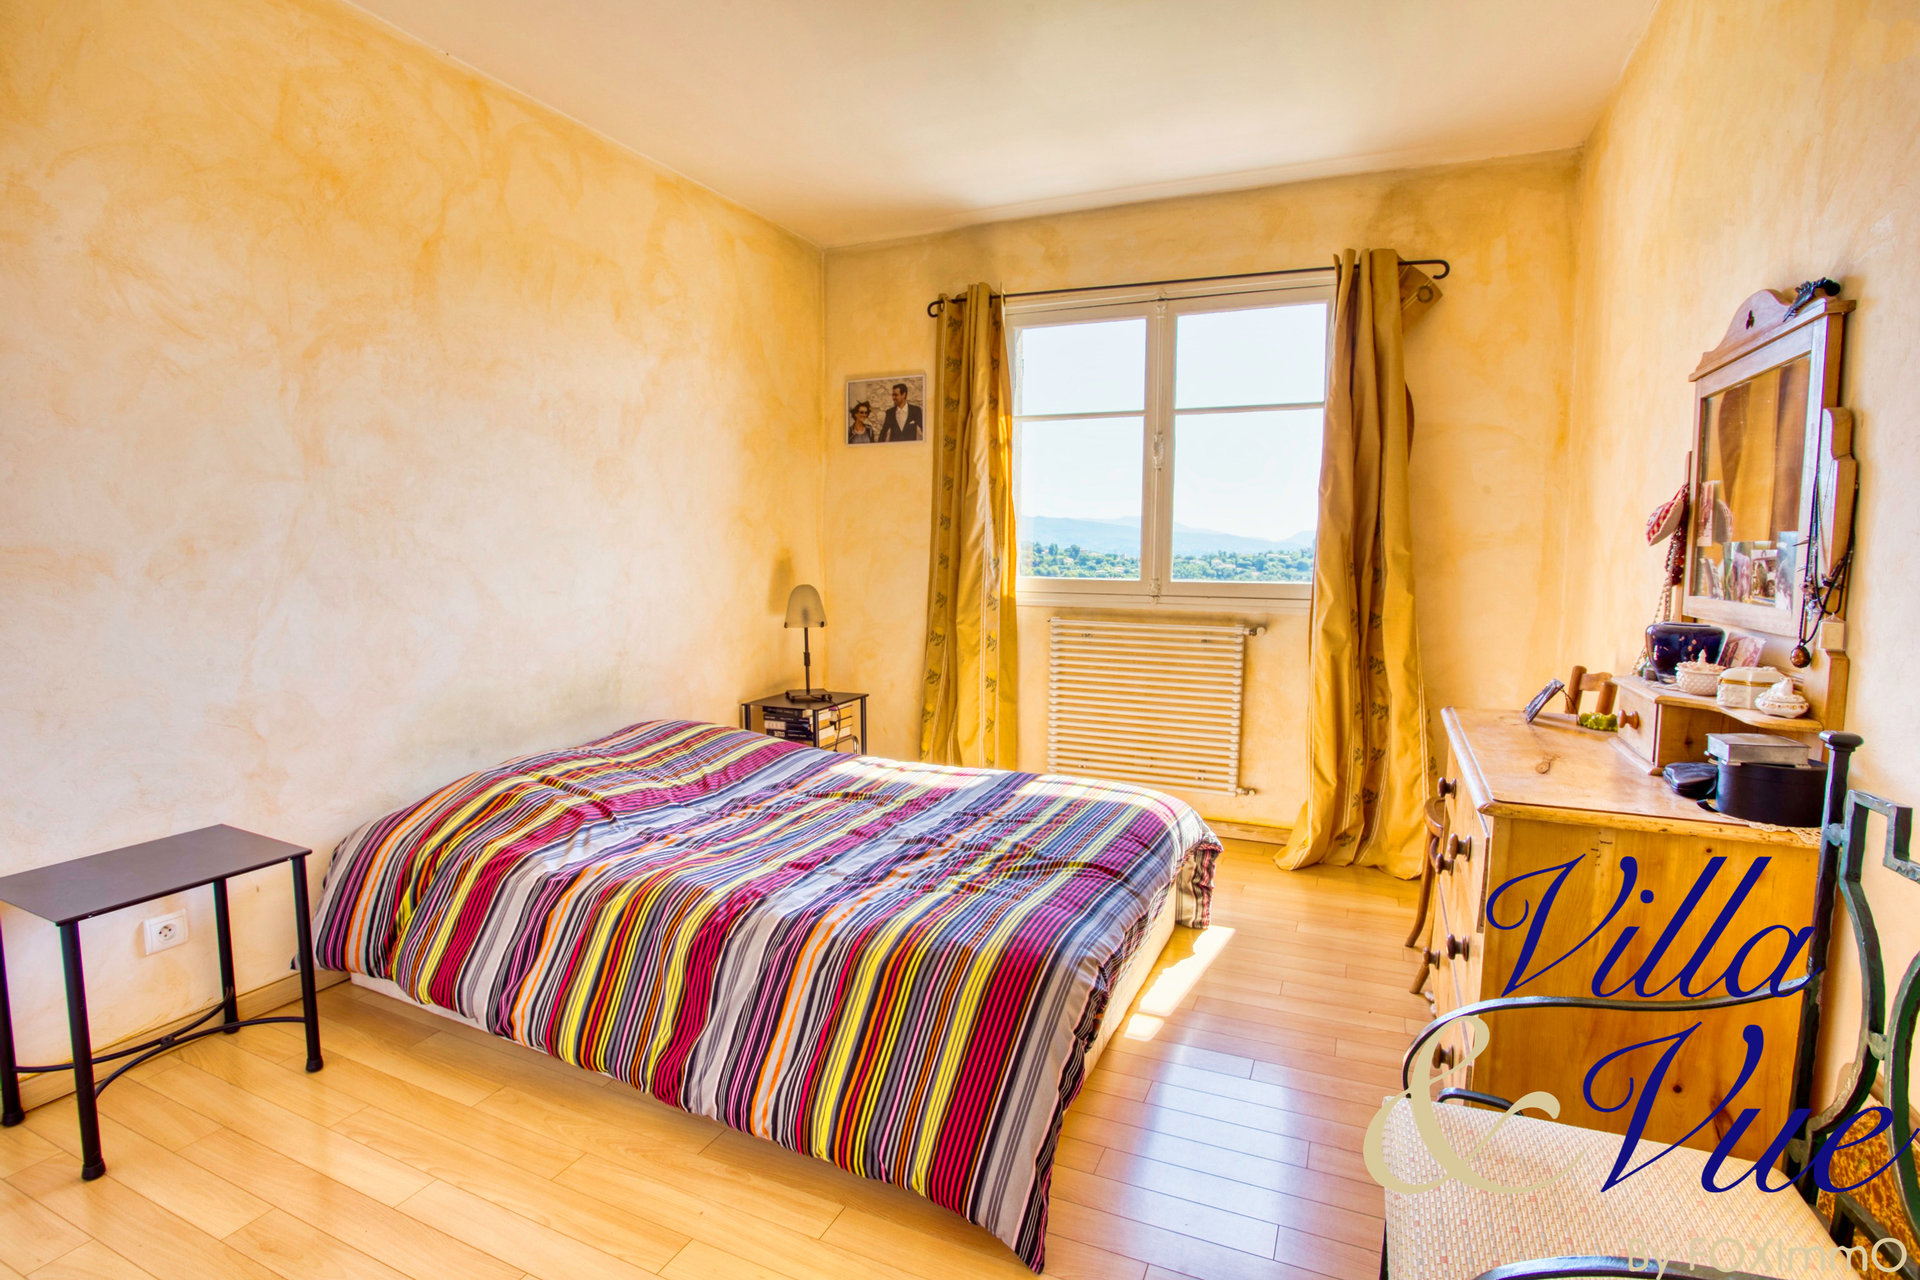 Beautiful house for sale in 2 apartments, Vence, sea and mountain views